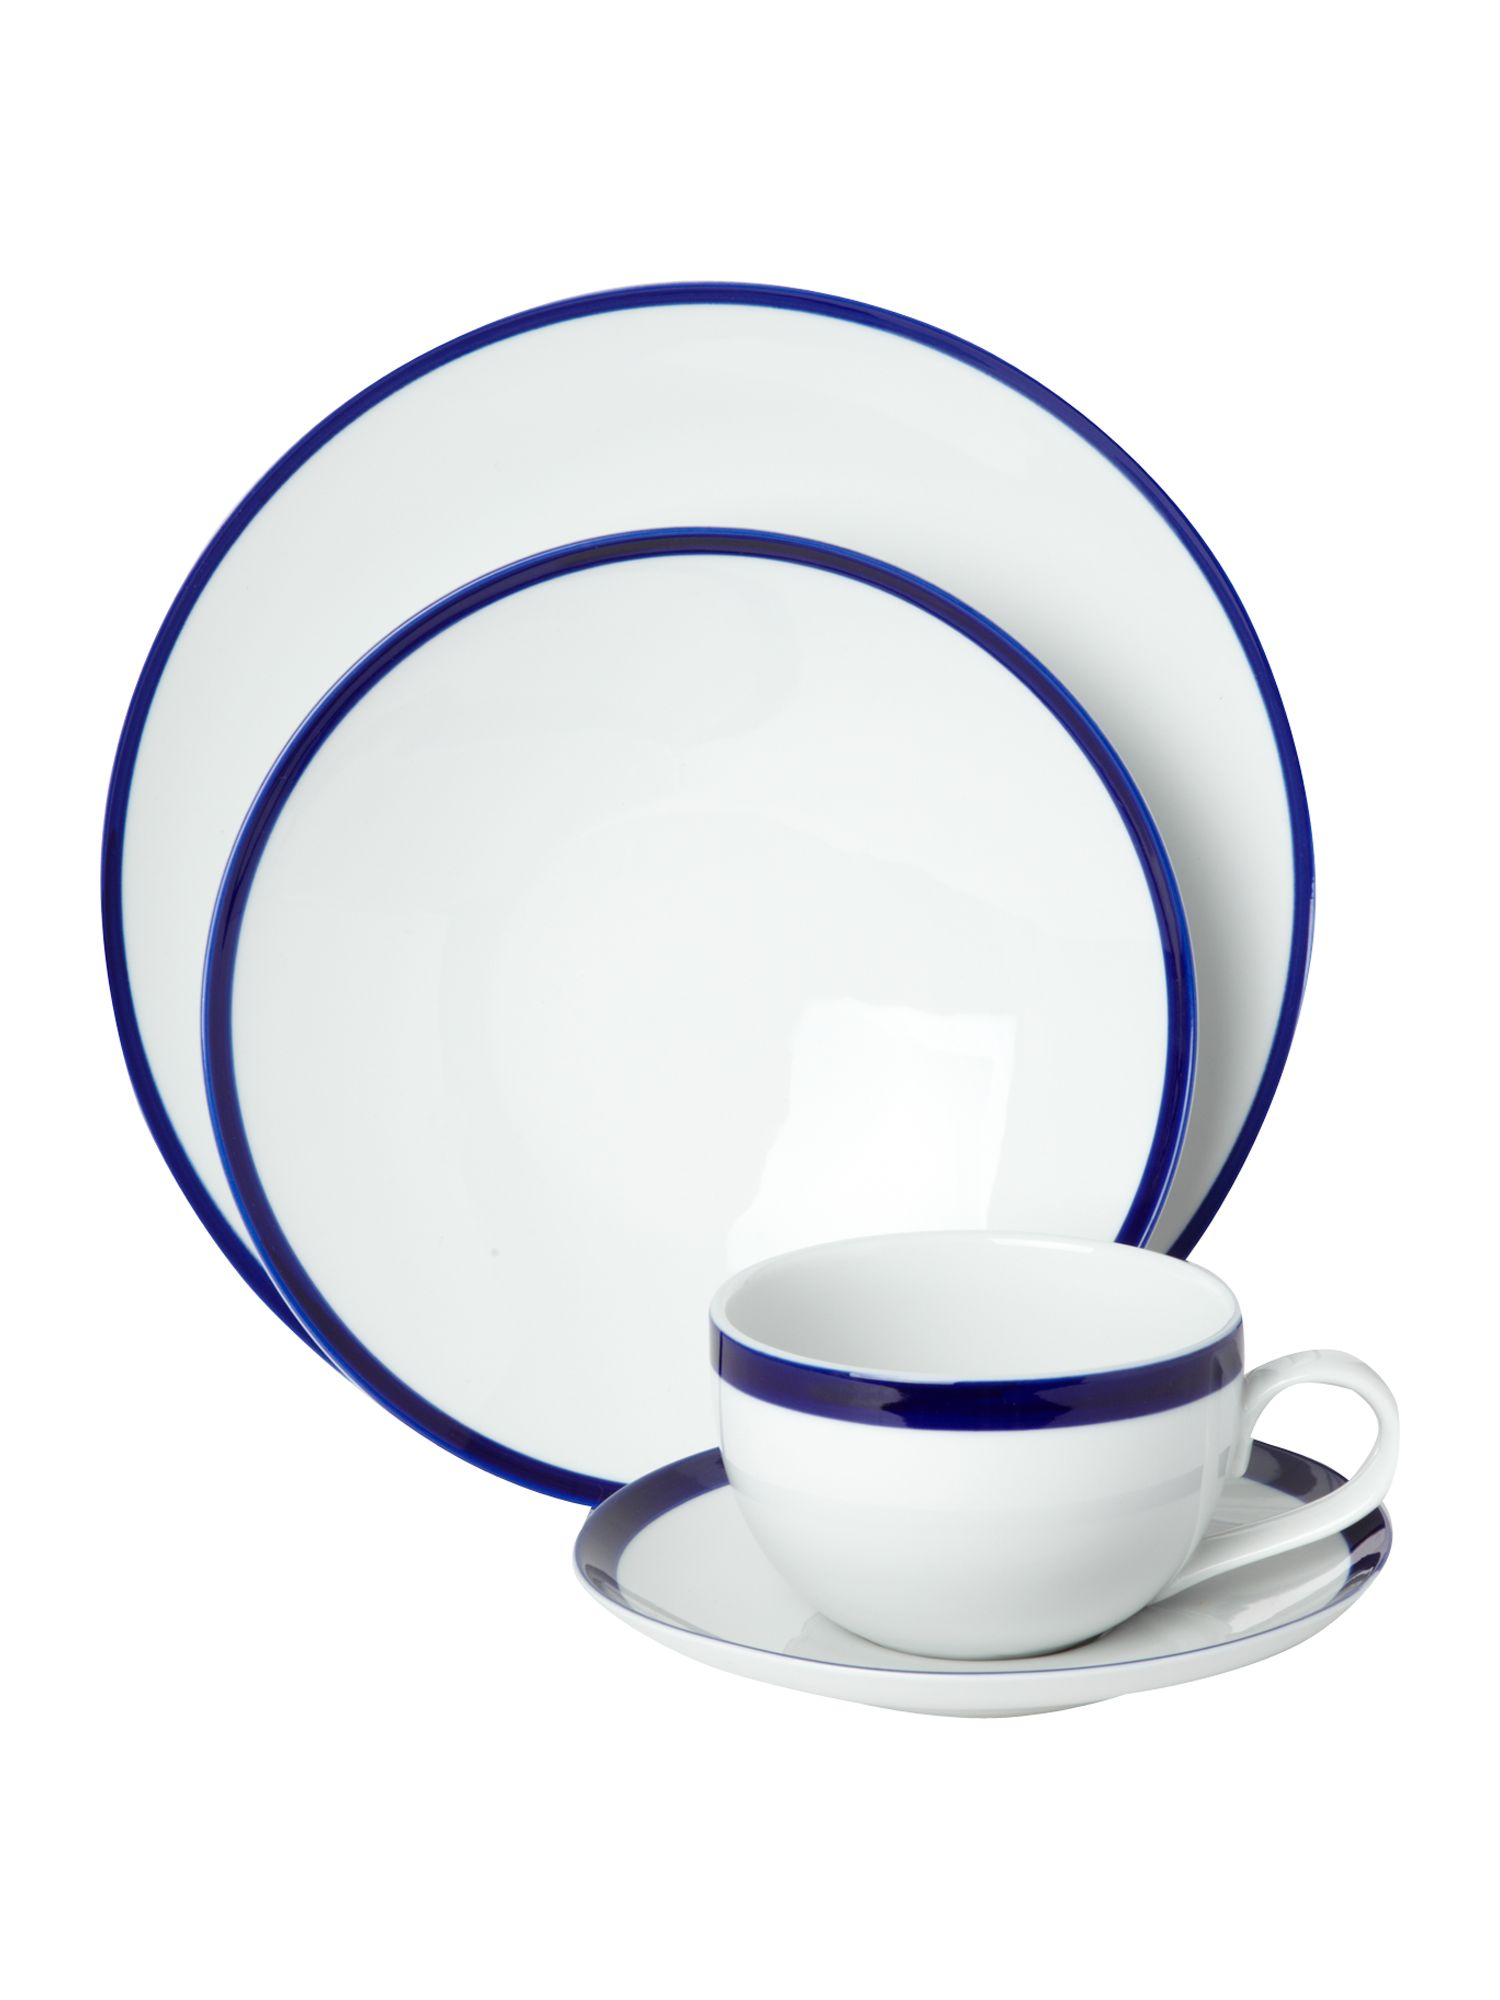 Pacific dinnerware